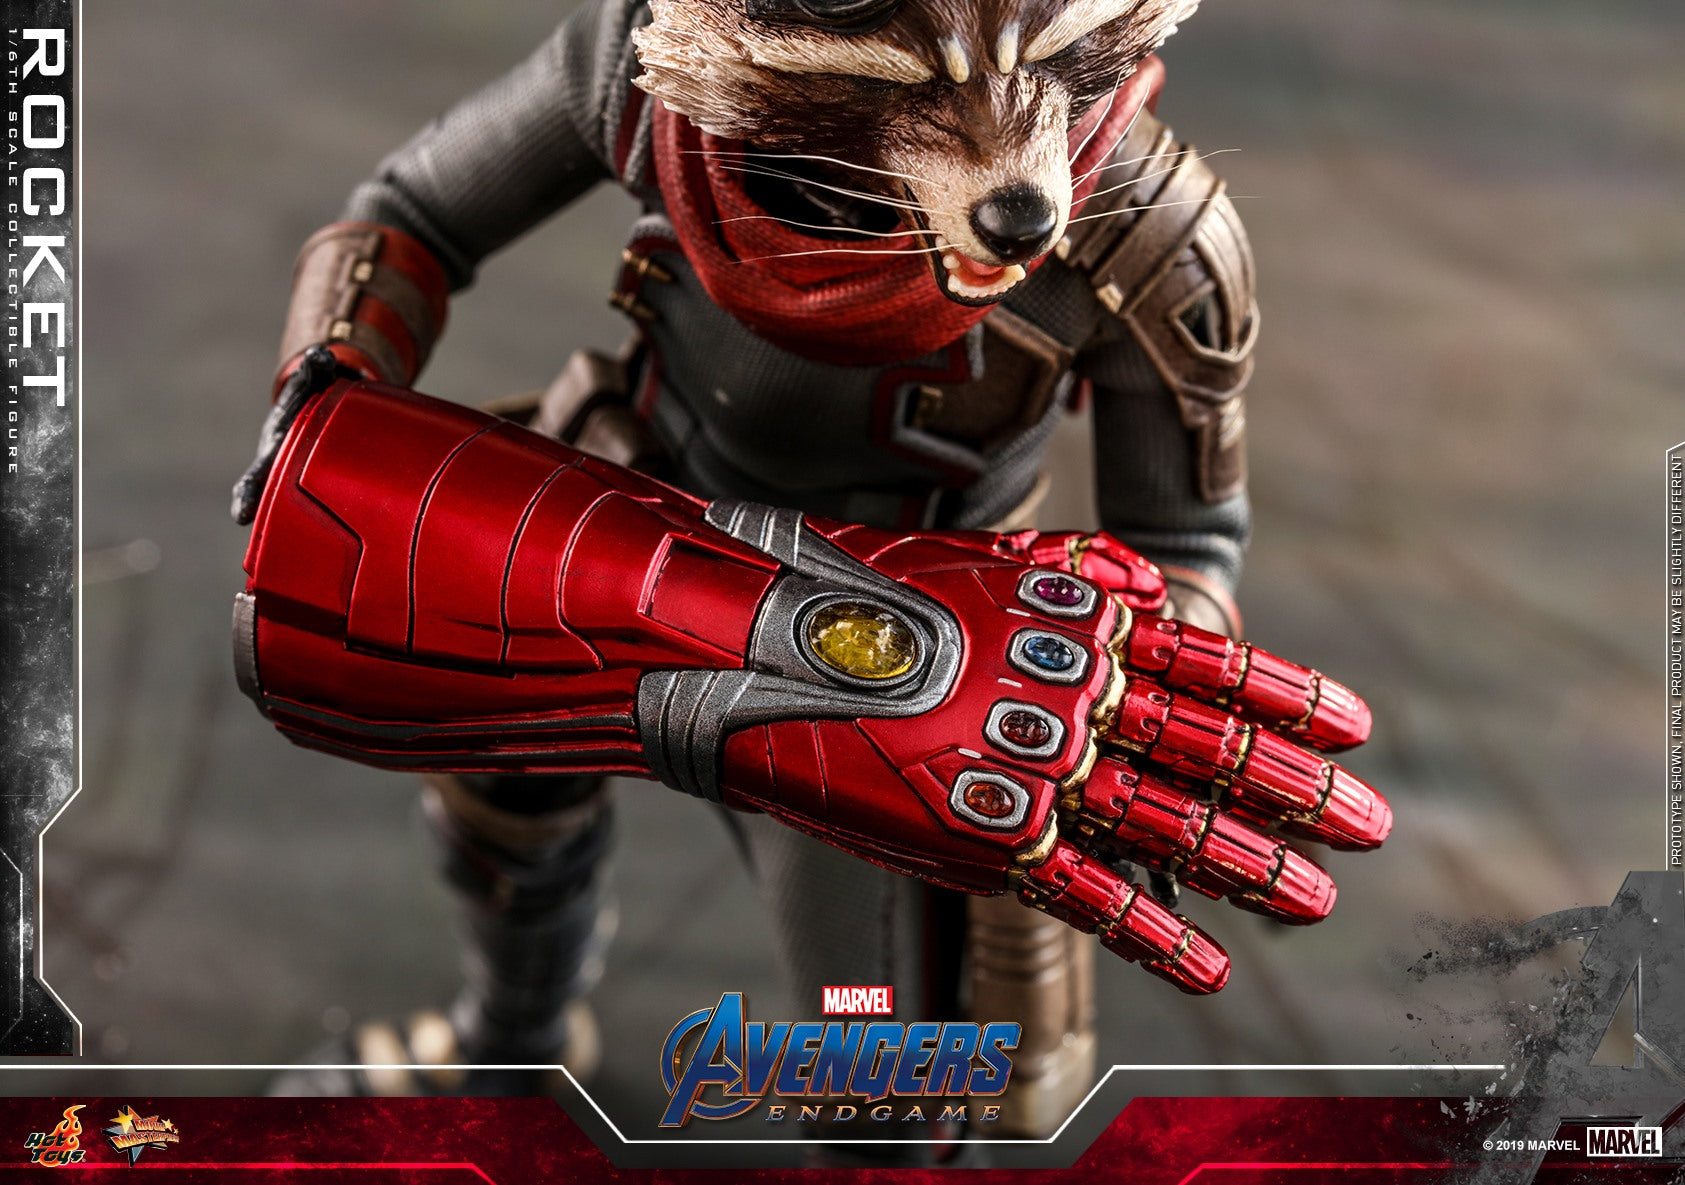 (IN STOCK) Hot Toys - MMS548 - Avengers: Endgame - Rocket Raccoon (1/6 Scale)